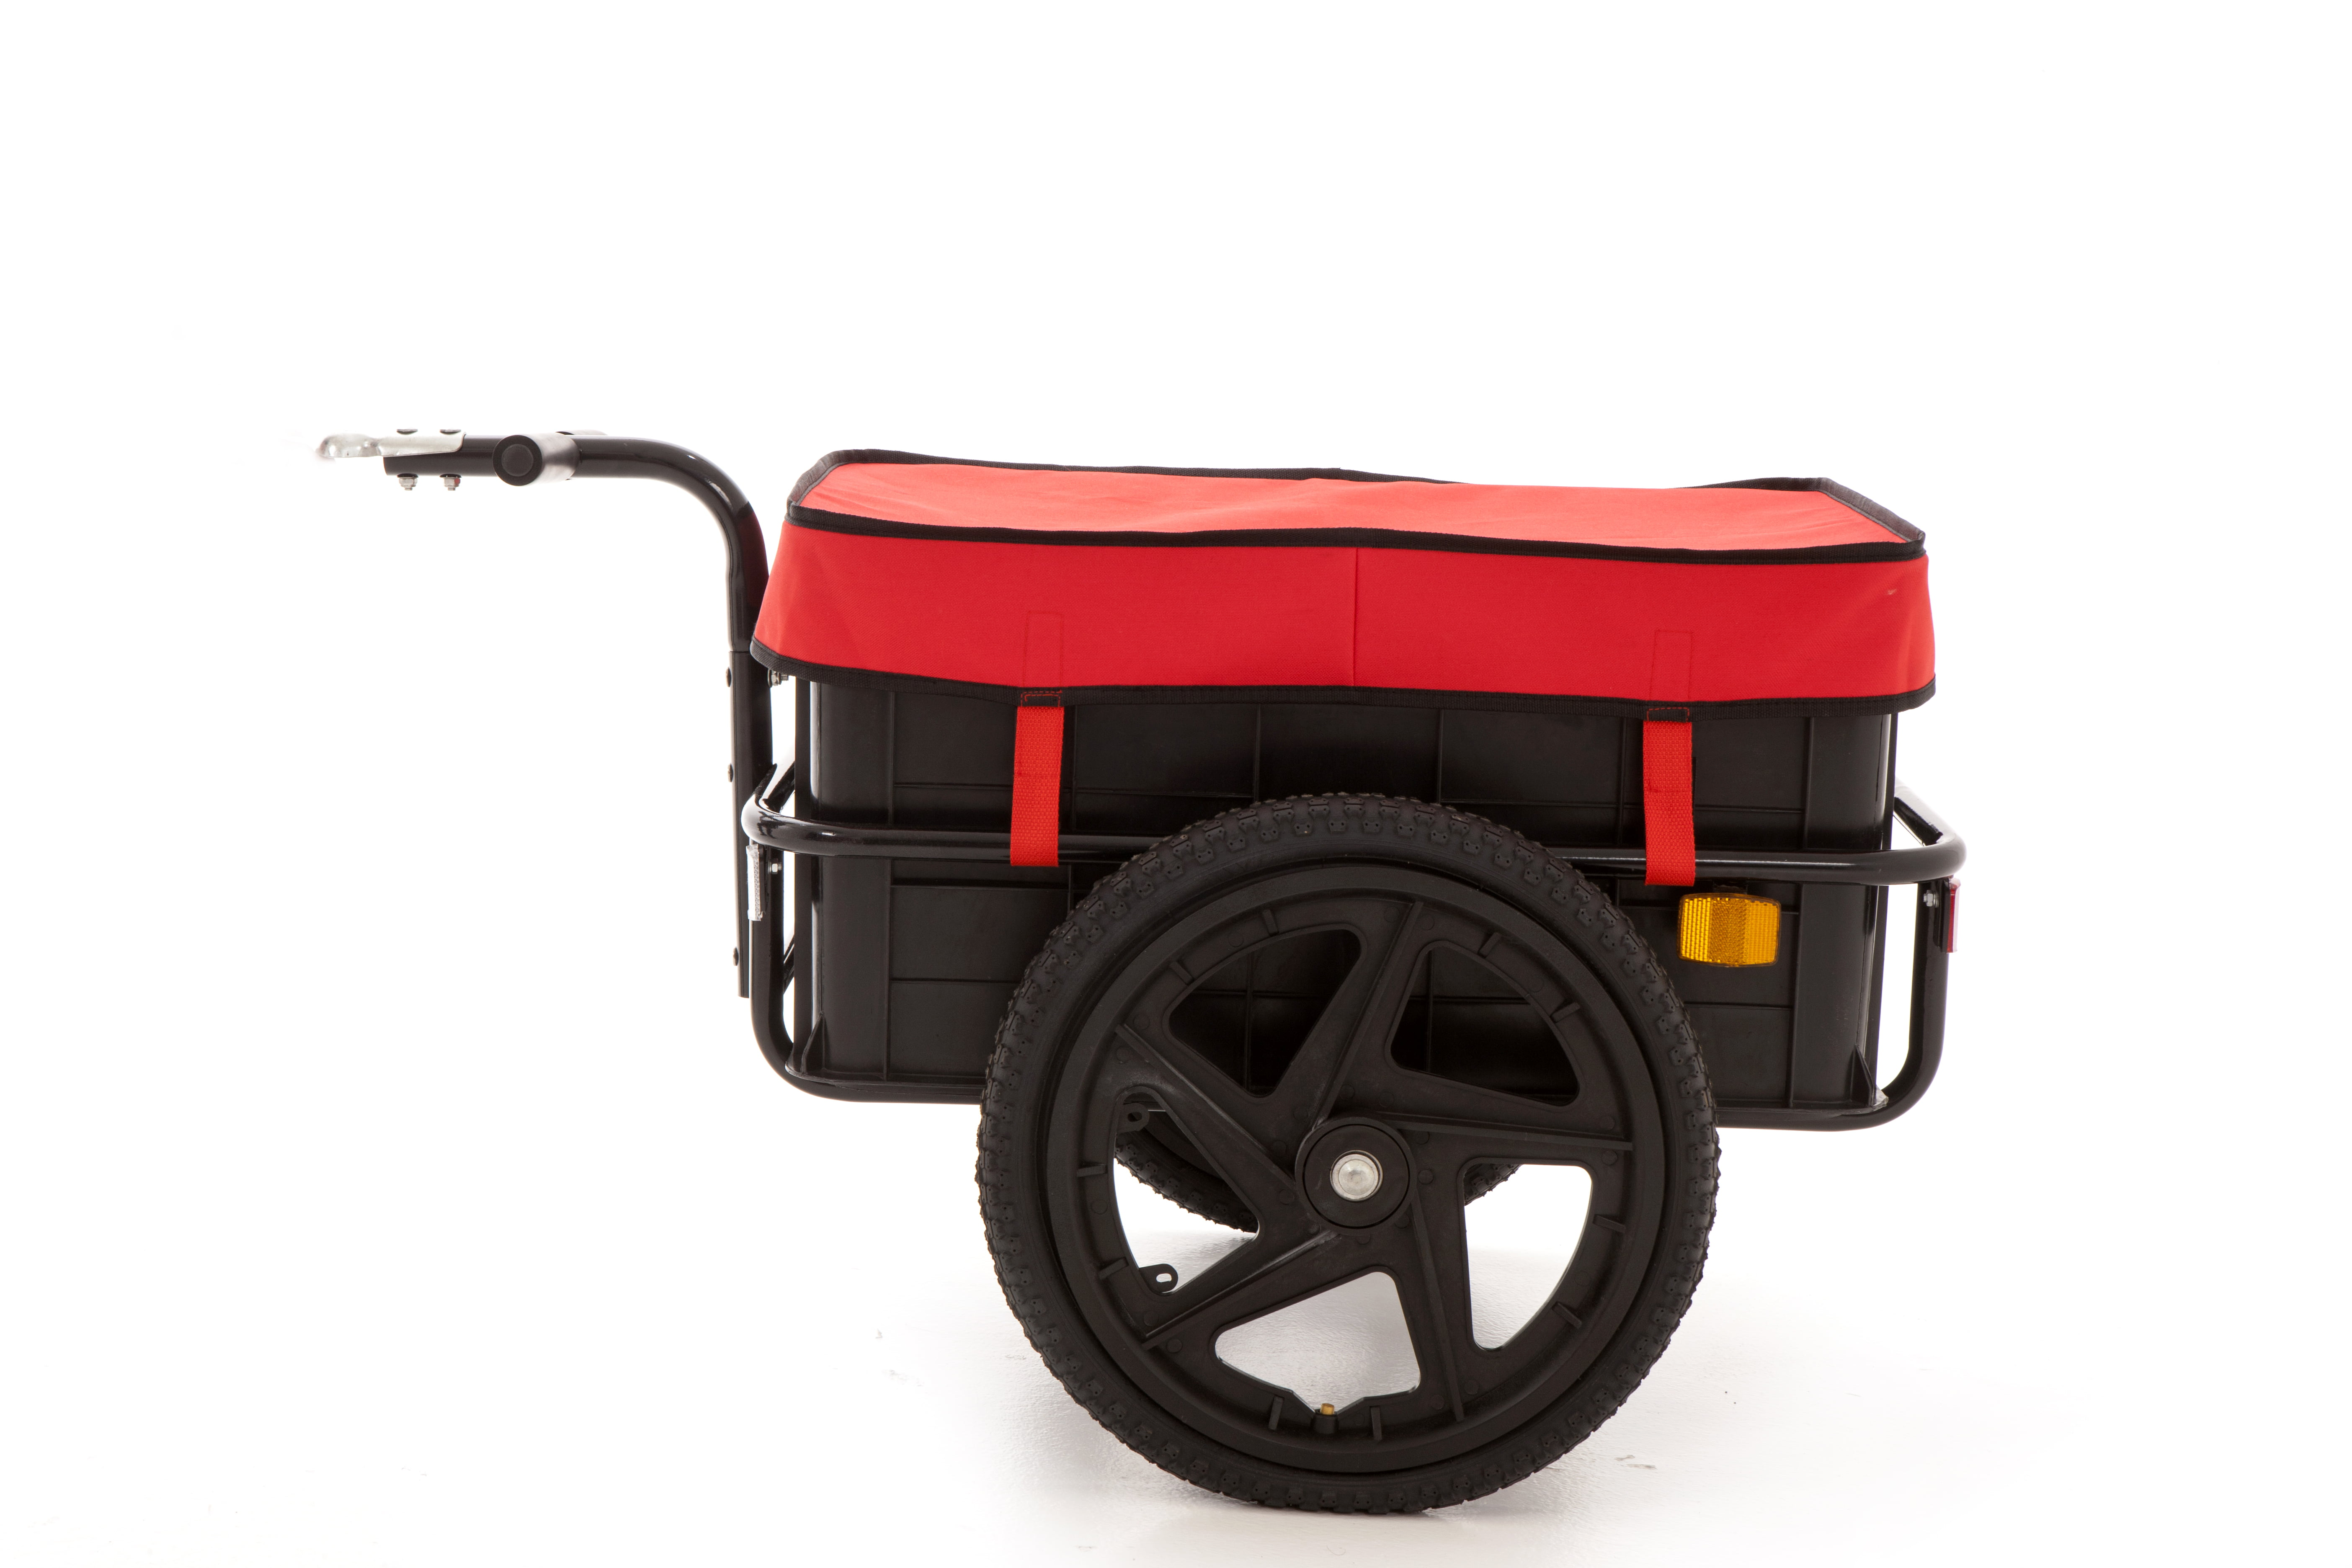 Mobility Scooter Trailer | 40kg Capacity | Quick release towbar | Monarch Mobility Accessories 0800 002 9633